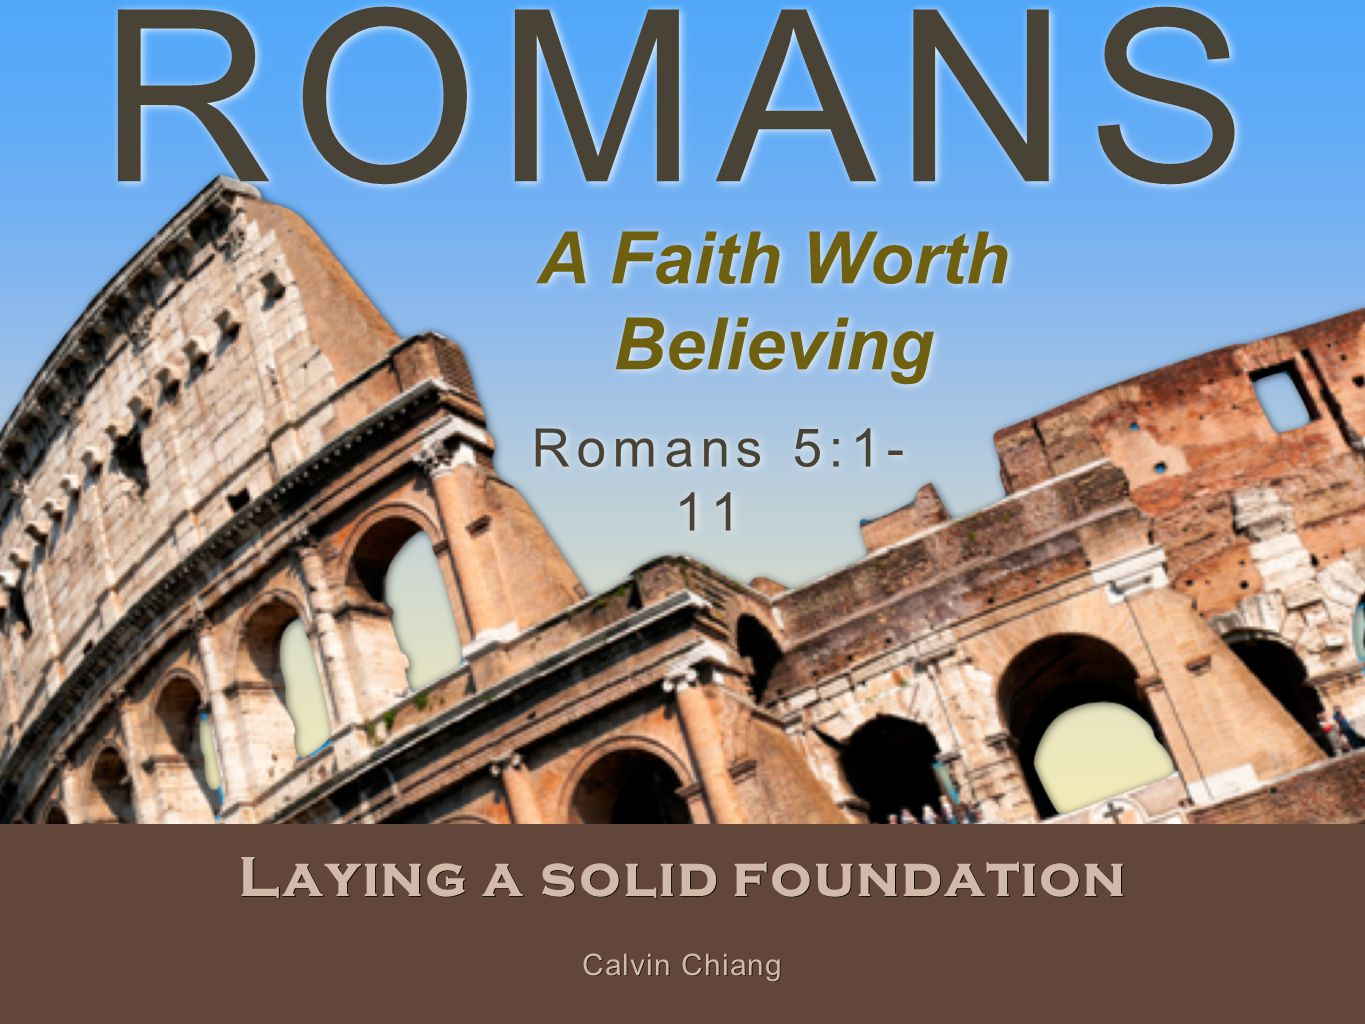 ROMANS Laying a solid foundation Romans 5:1- 11 Calvin Chiang A Faith Worth Believing